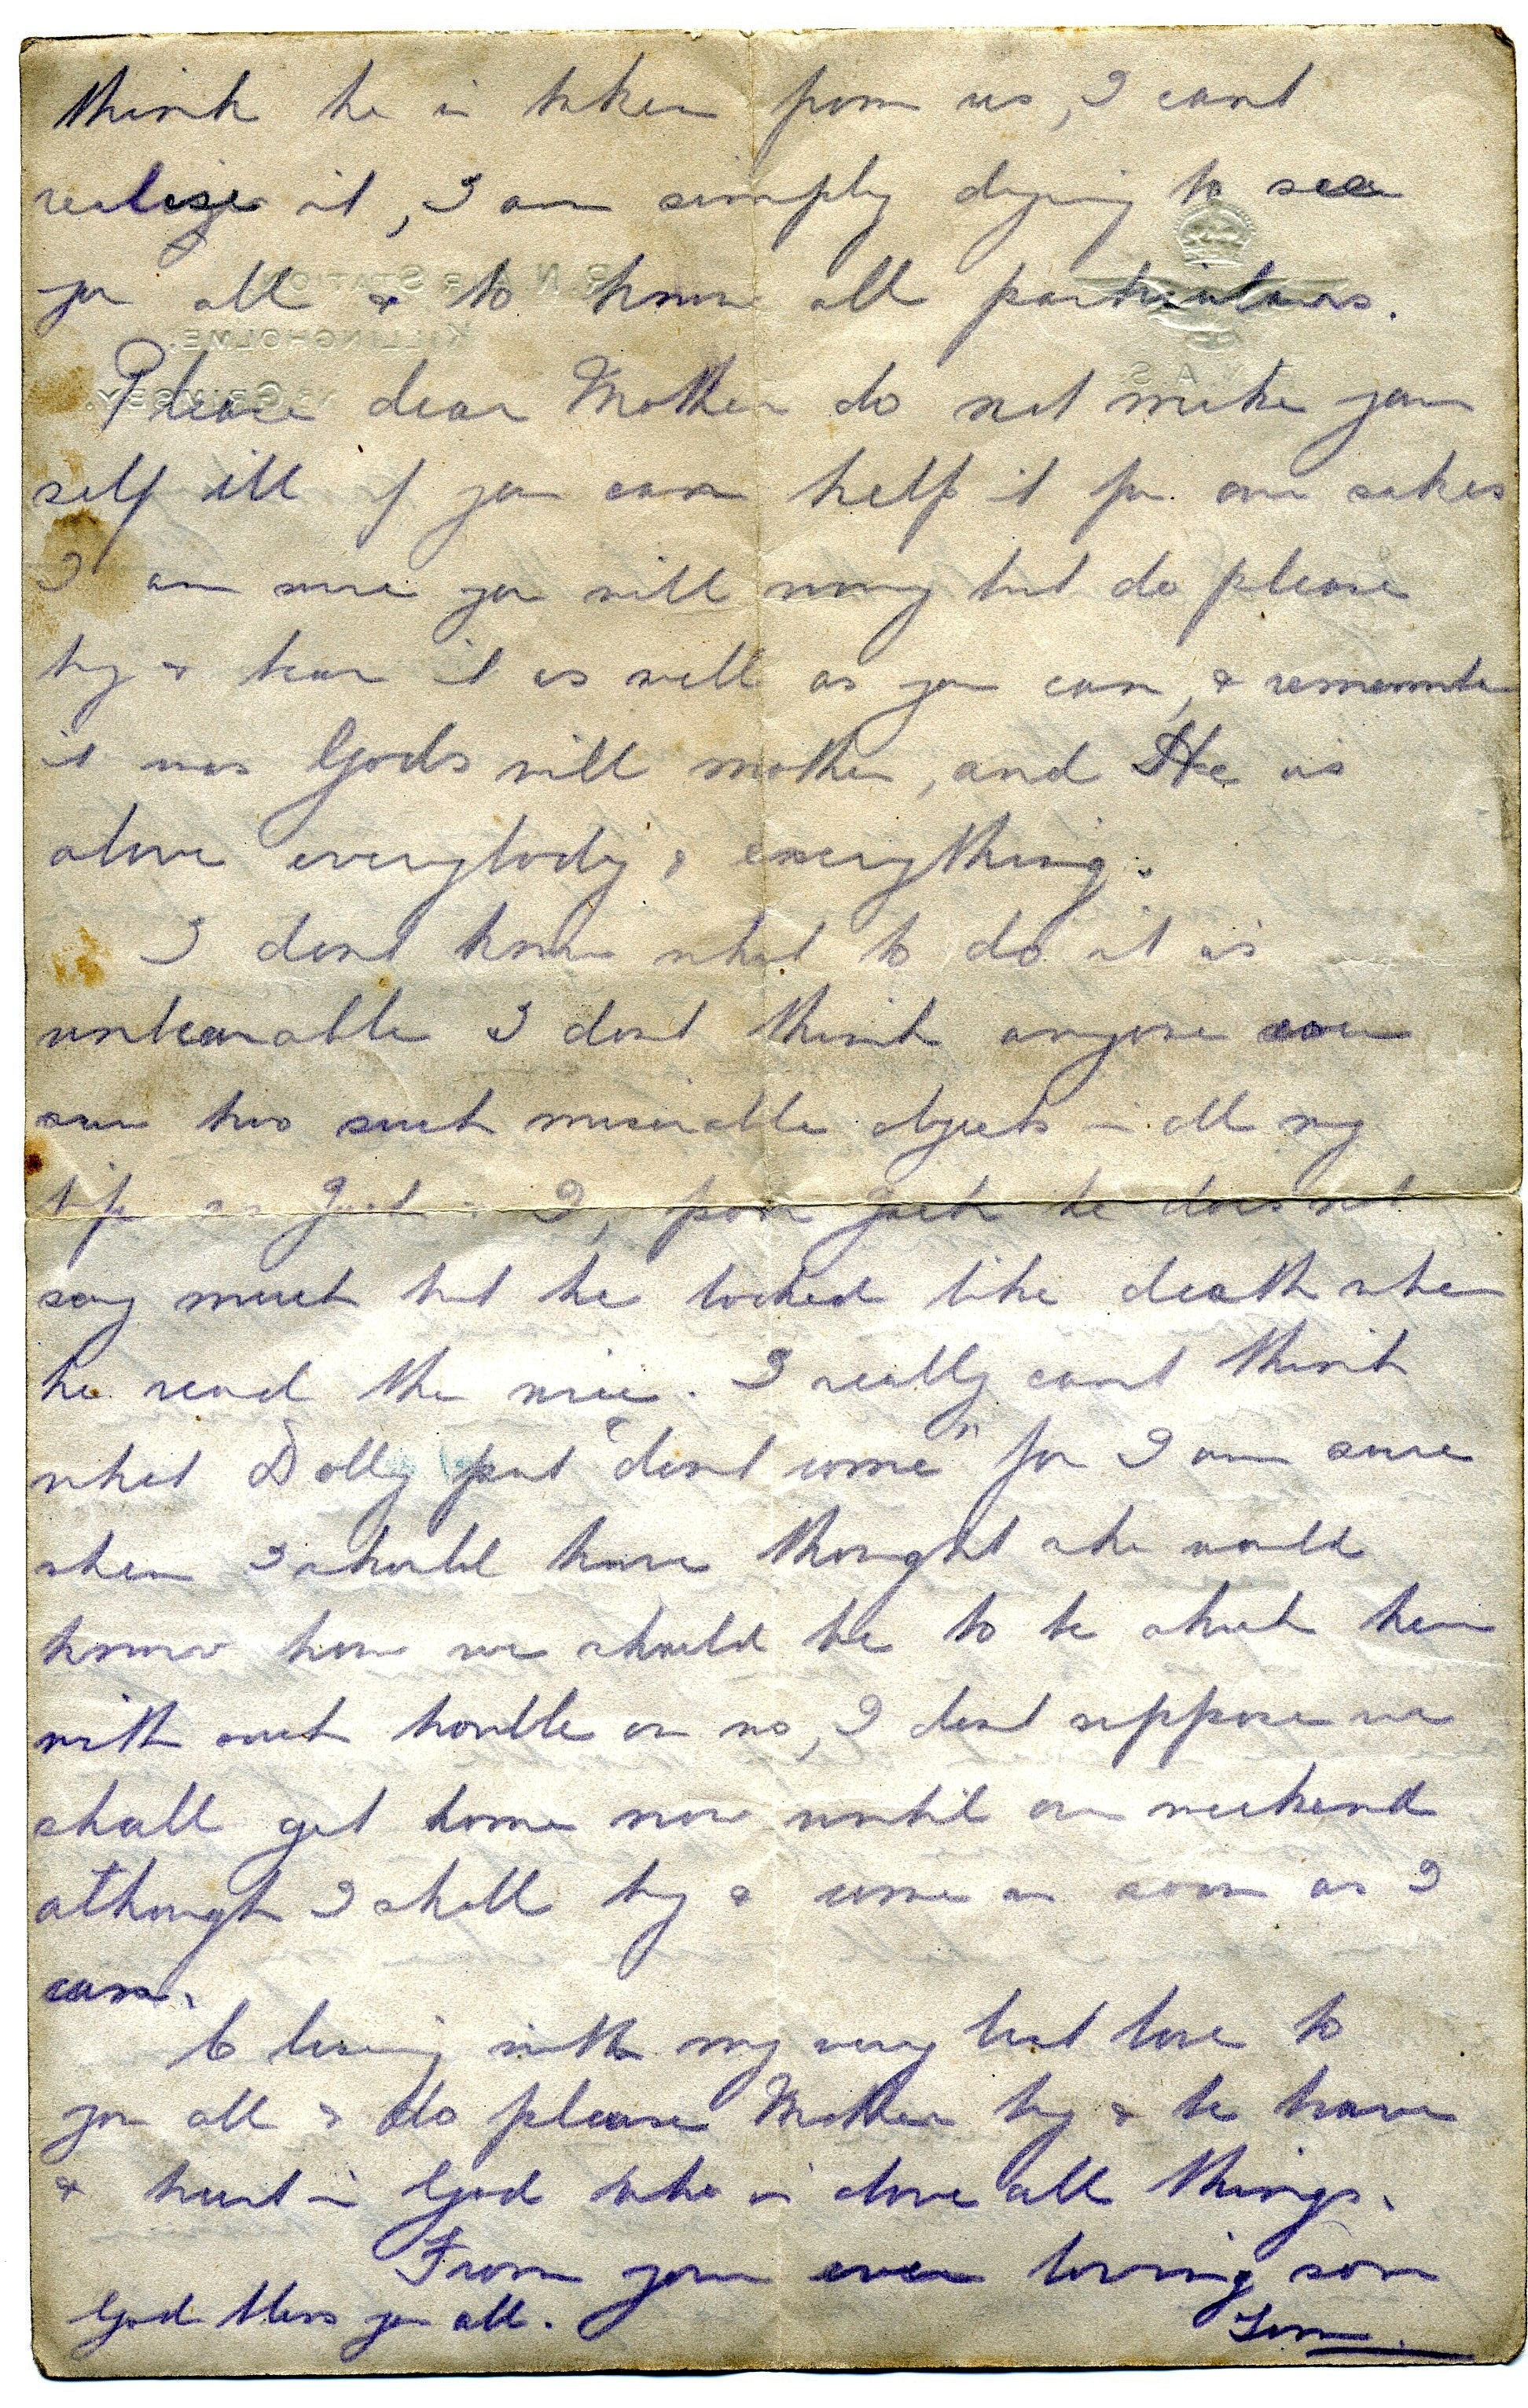 a letter home from vimy ridge